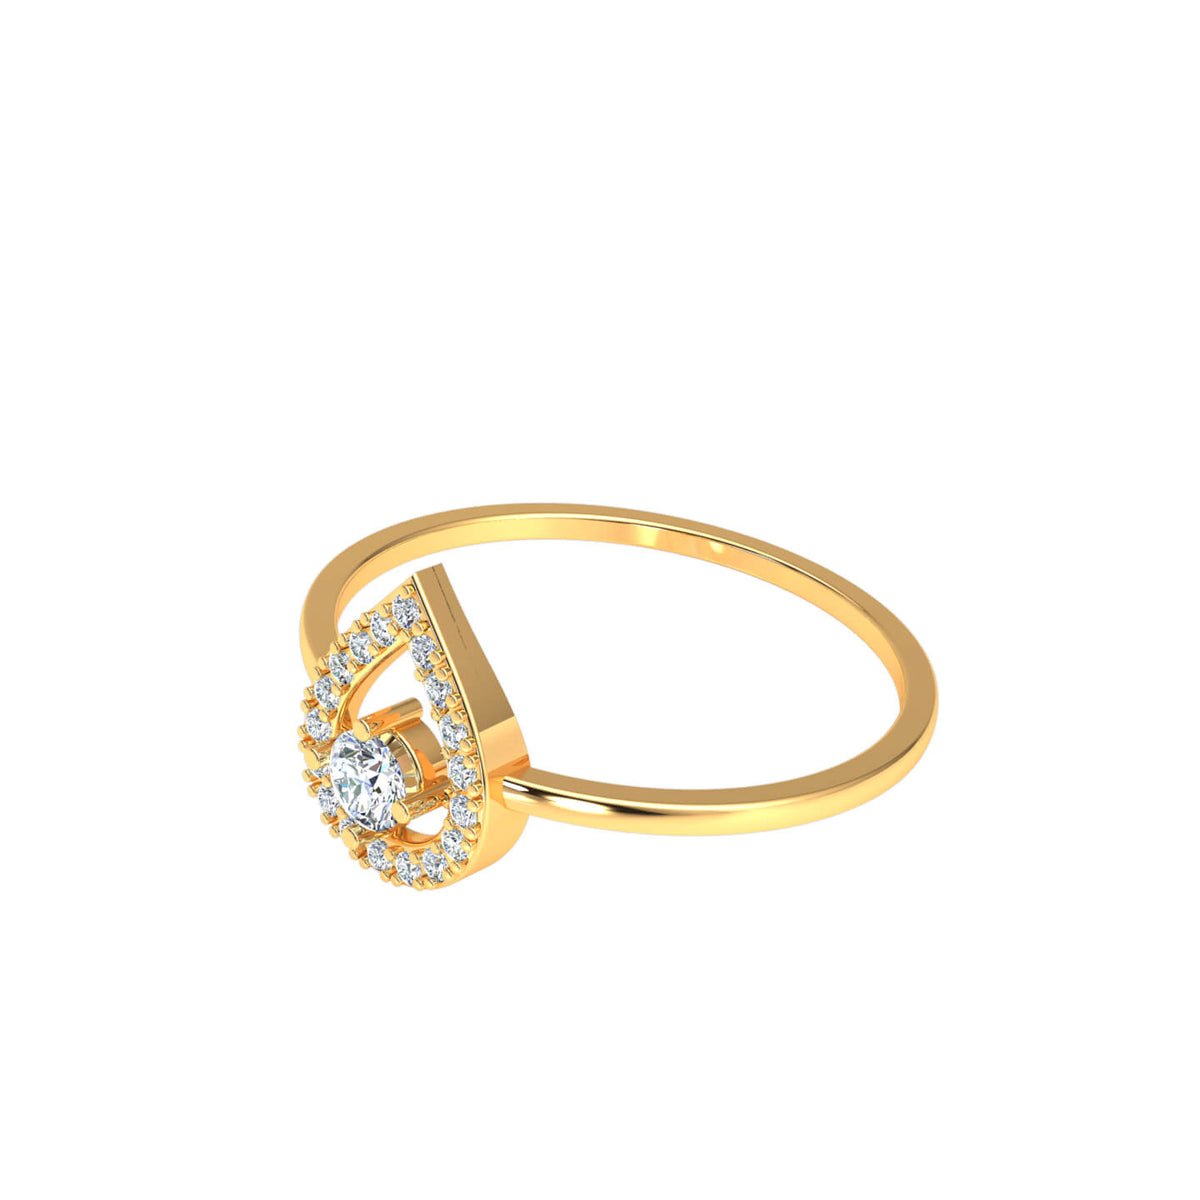 0.20 Ct Round F VS1 Diamond Halo Solitaire Fancy Ring For Women 18k Gold